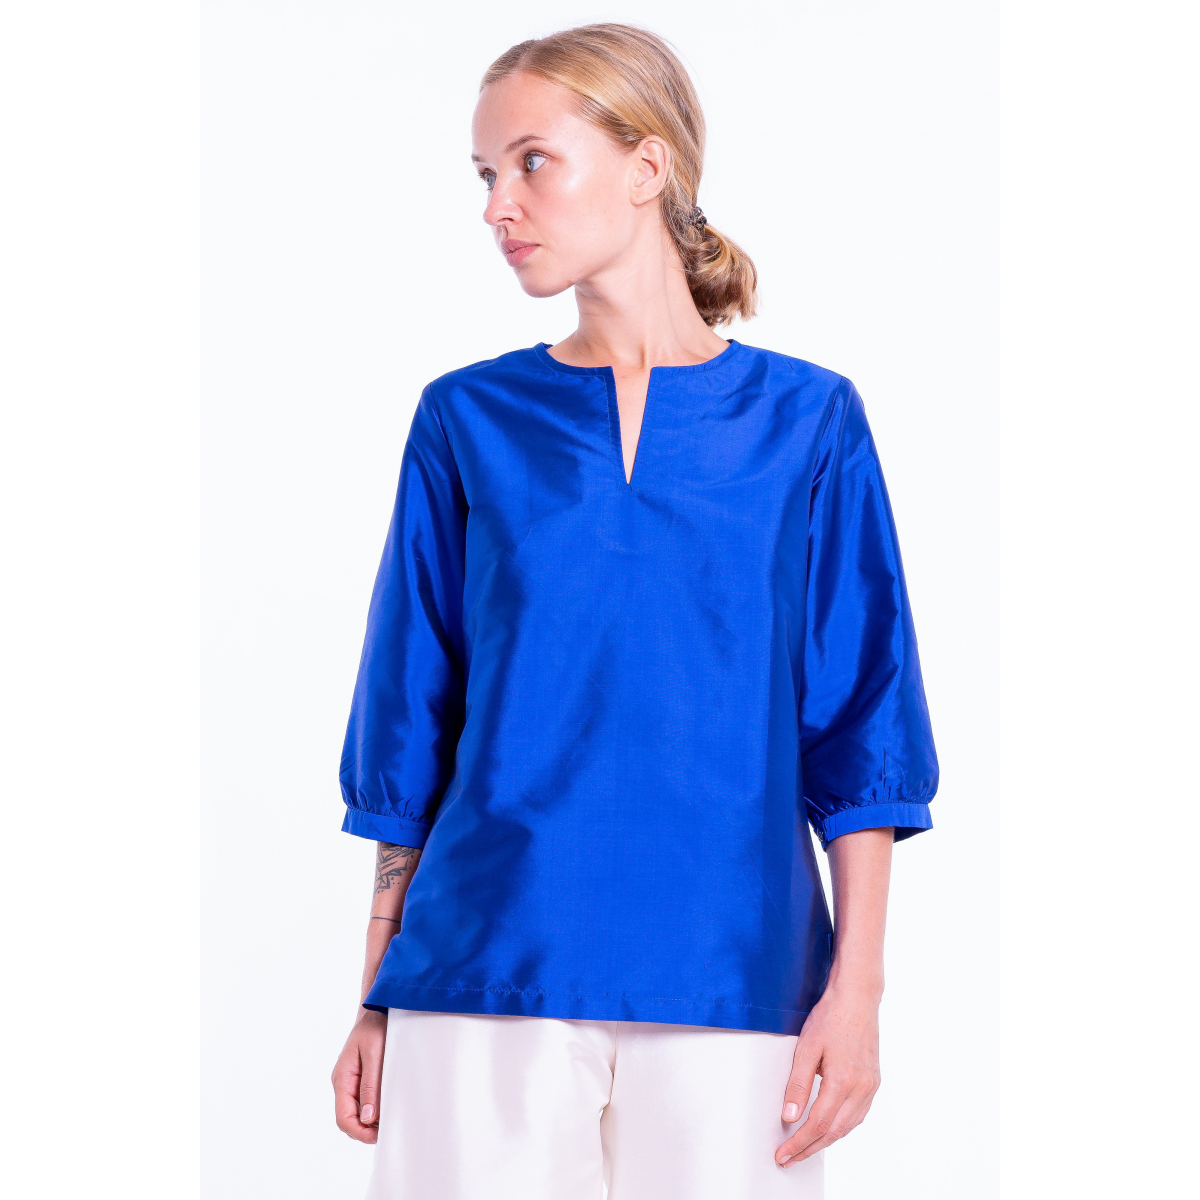 blue lazuli top in natural silk, three quarter length sleeves, tunisien neckline